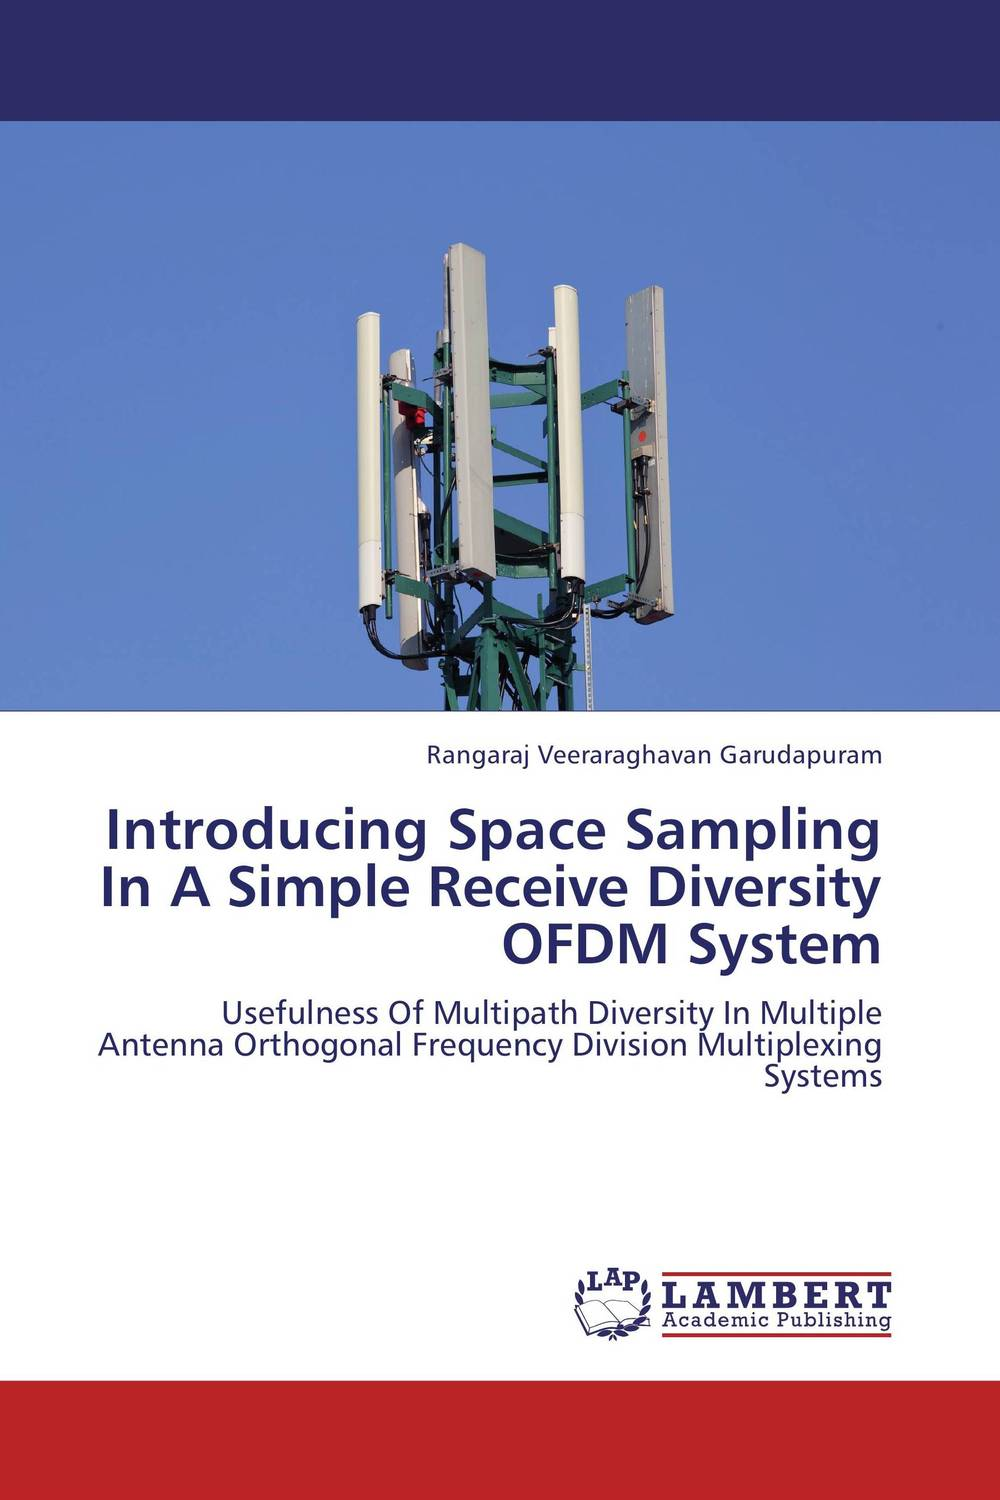 Introducing Space Sampling In A Simple Receive Diversity OFDM System linguistic diversity and social justice